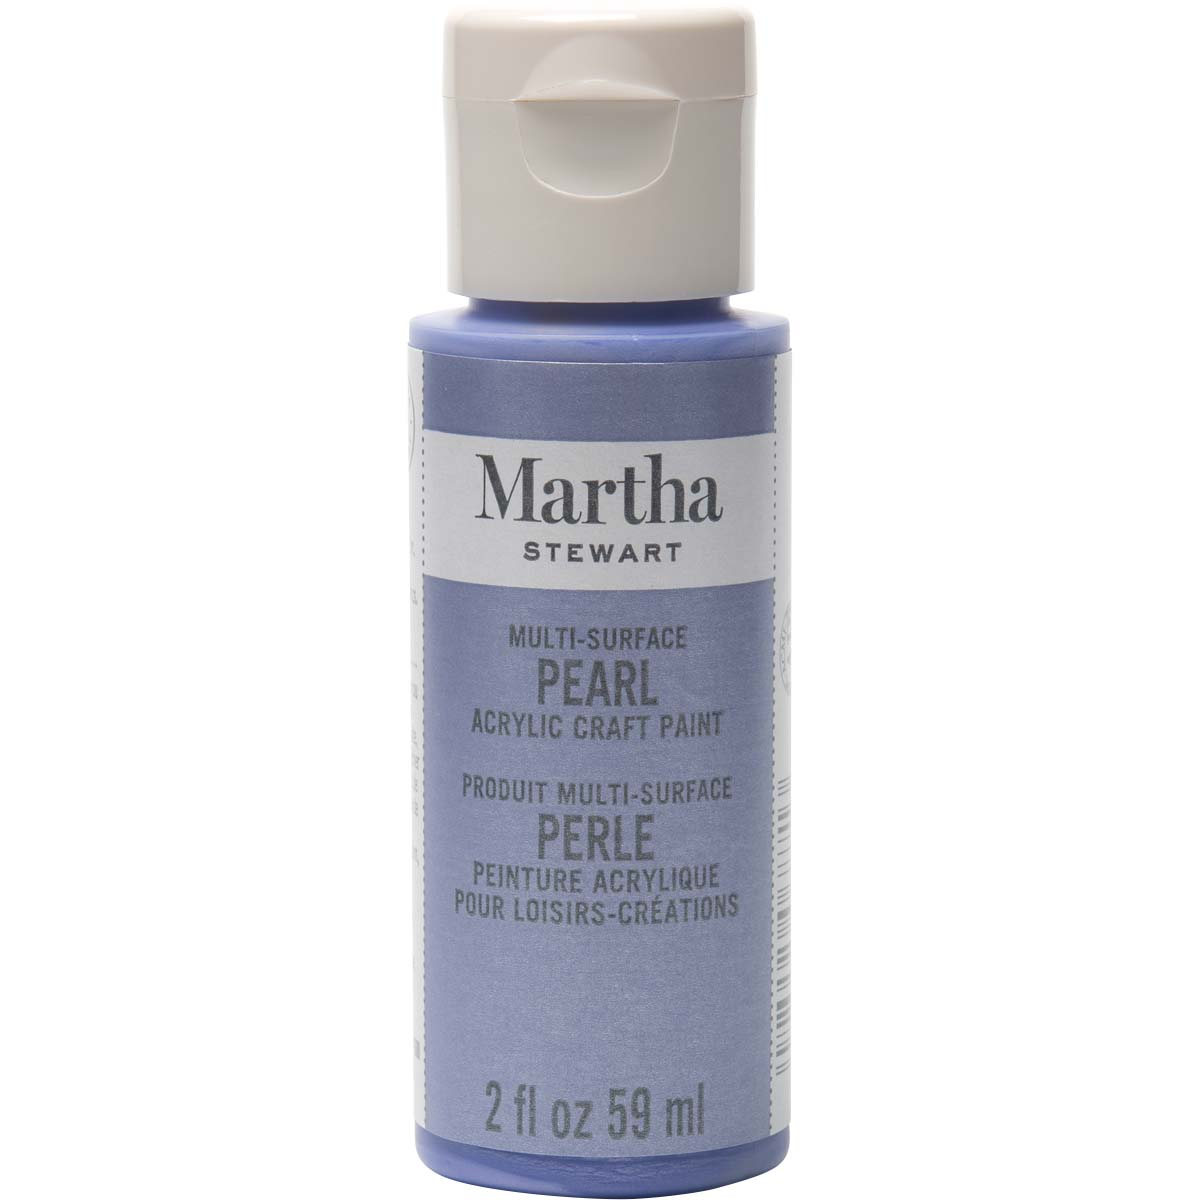 Martha Stewart ® Multi-Surface Pearl Acrylic Craft Paint - Twilight Blue, 2 oz.